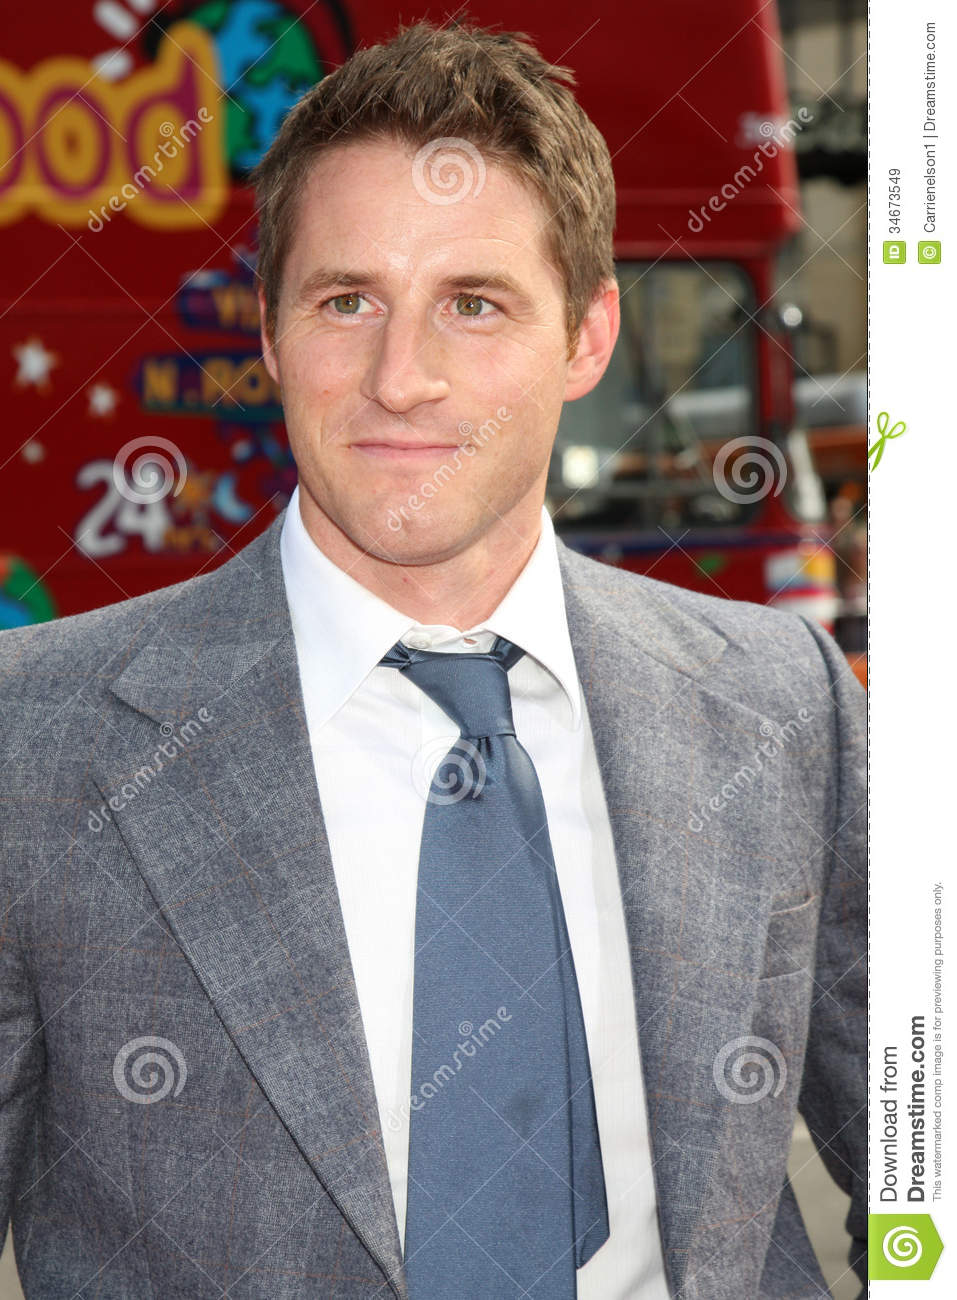 sam jaeger height and weightsam jaeger instagram, sam jaeger, sam jaeger wife, sam jaeger imdb, sam jaeger net worth, sam jaeger friday night lights, sam jaeger twitter, sam jaeger shirtless, sam jaeger parenthood, sam jaeger take me home, sam jaeger height, sam jaeger height and weight, sam jaeger leaving parenthood, sam jaeger facebook, sam jaeger wife photos, sam jaeger interview, sam jaeger scrubs